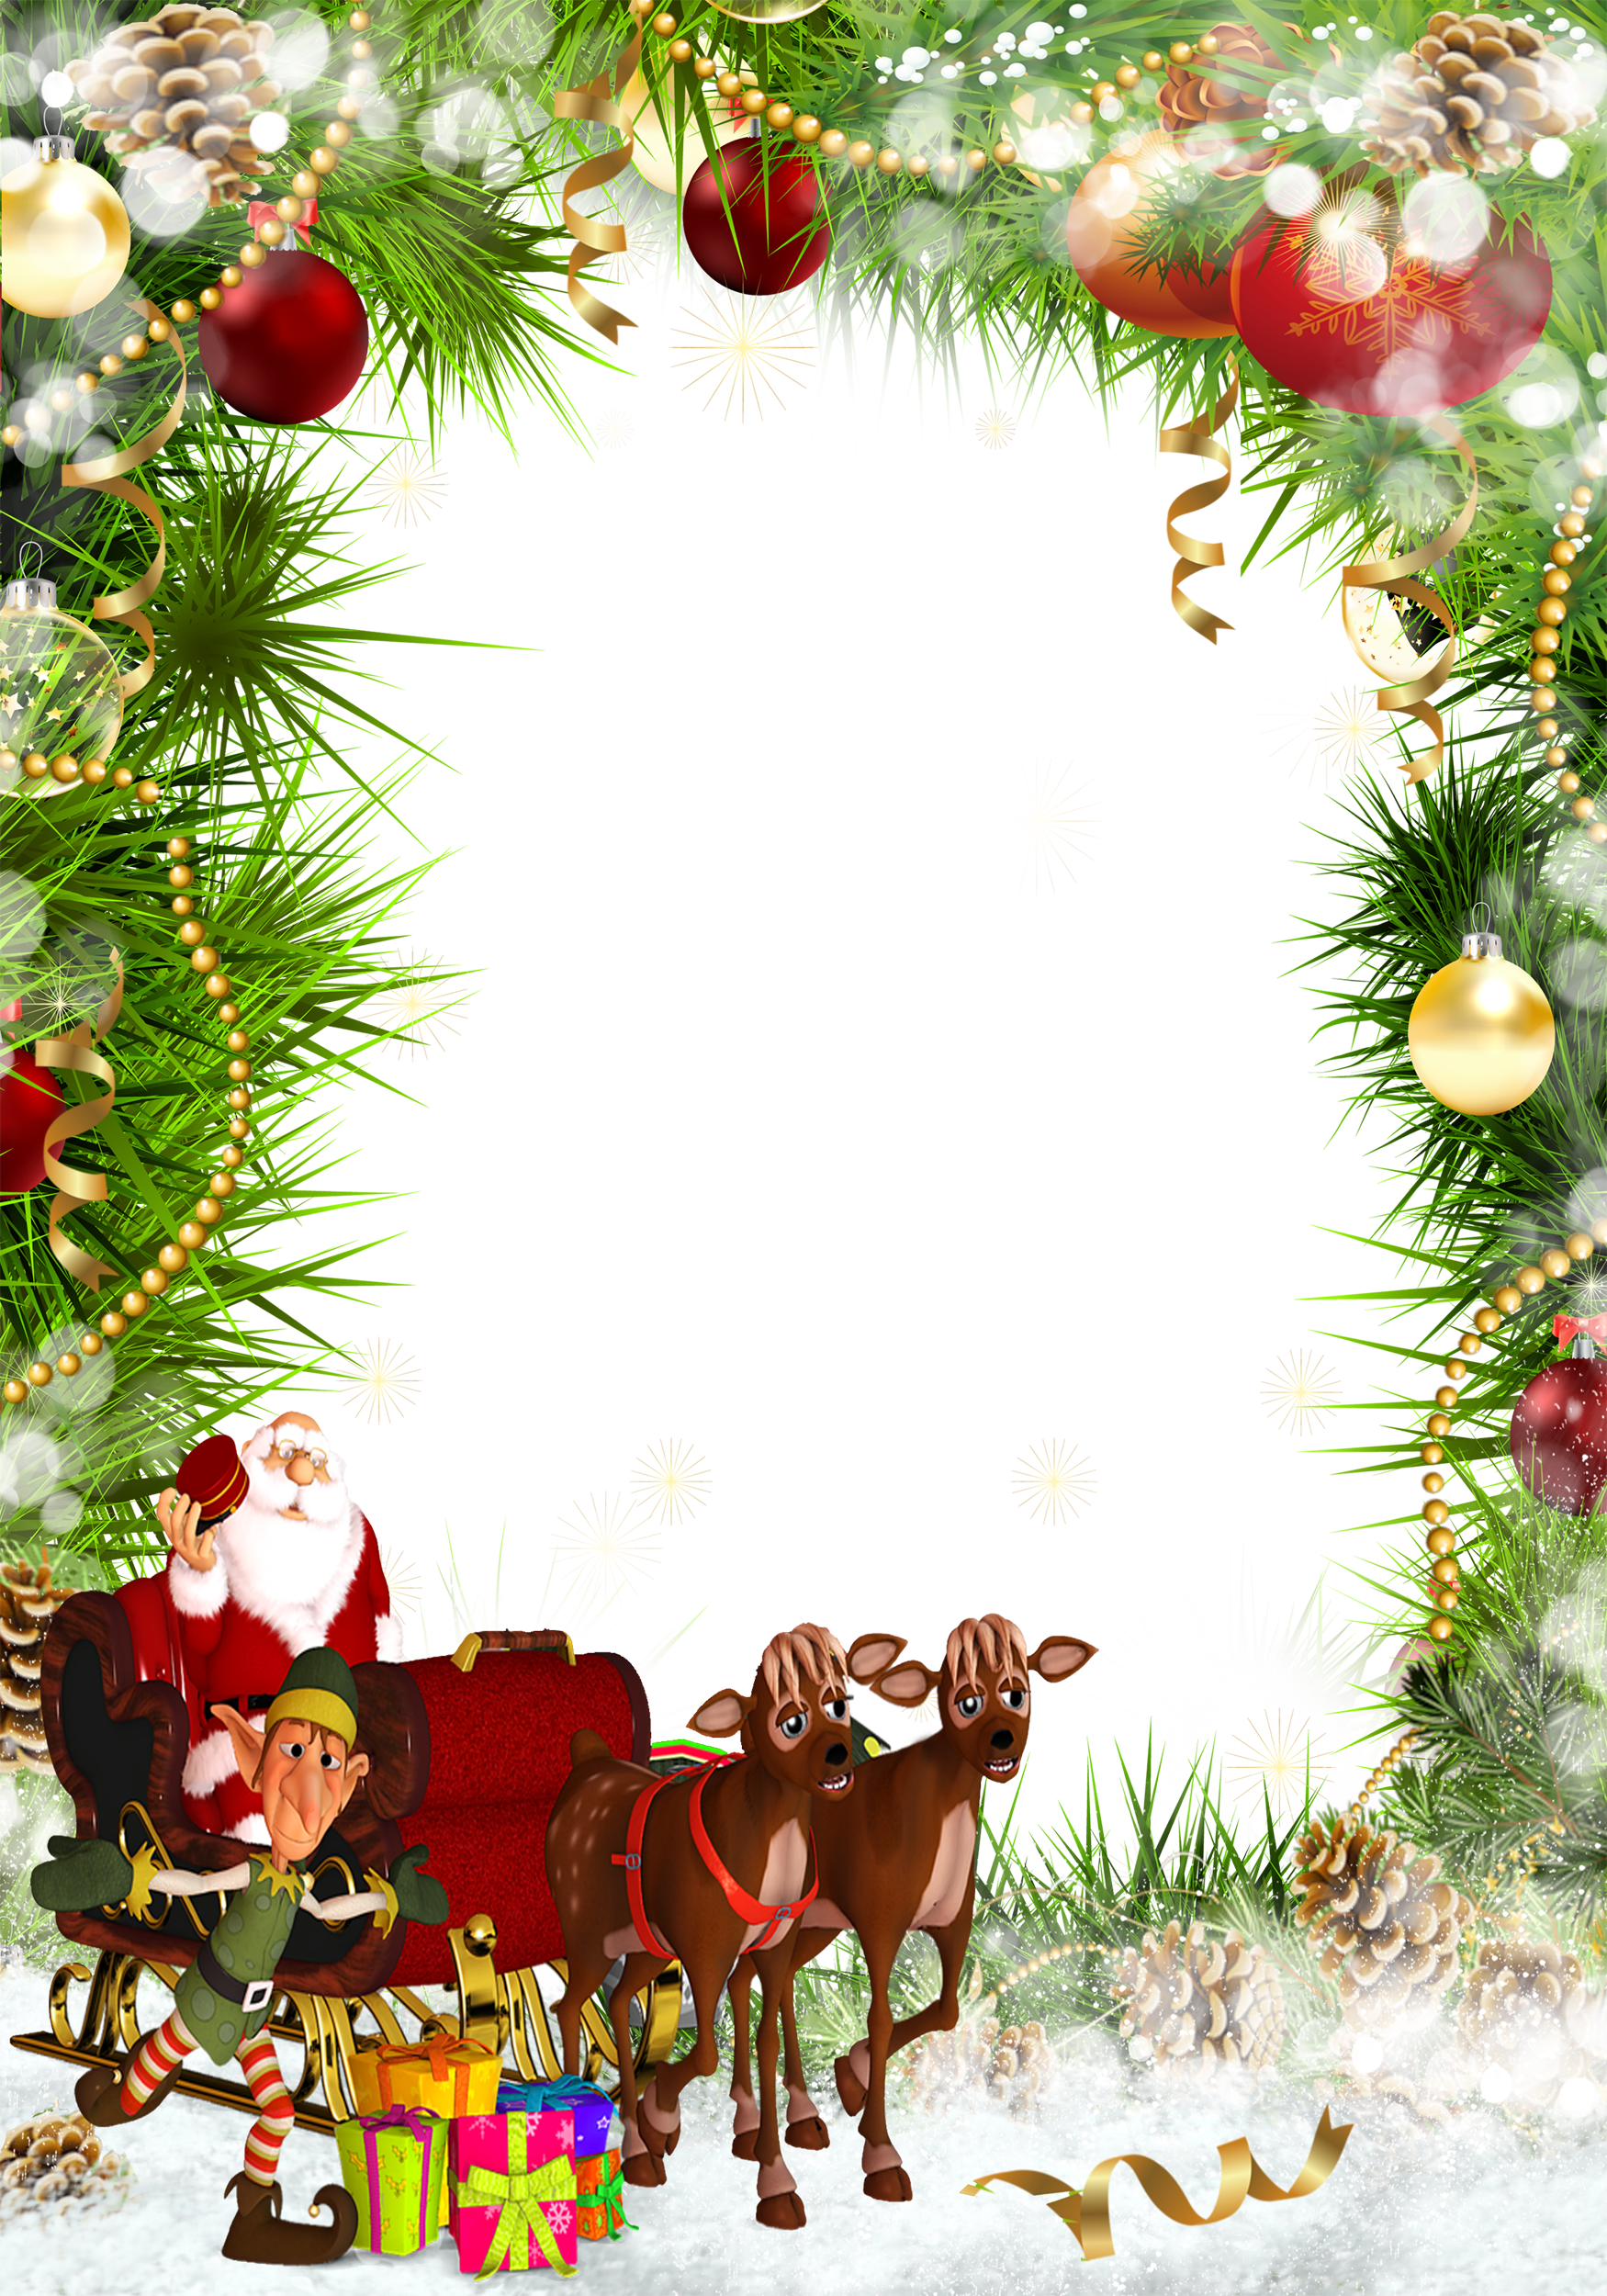 Christmas frames clipart picture free library Christmas frames clipart free dowload picture free library